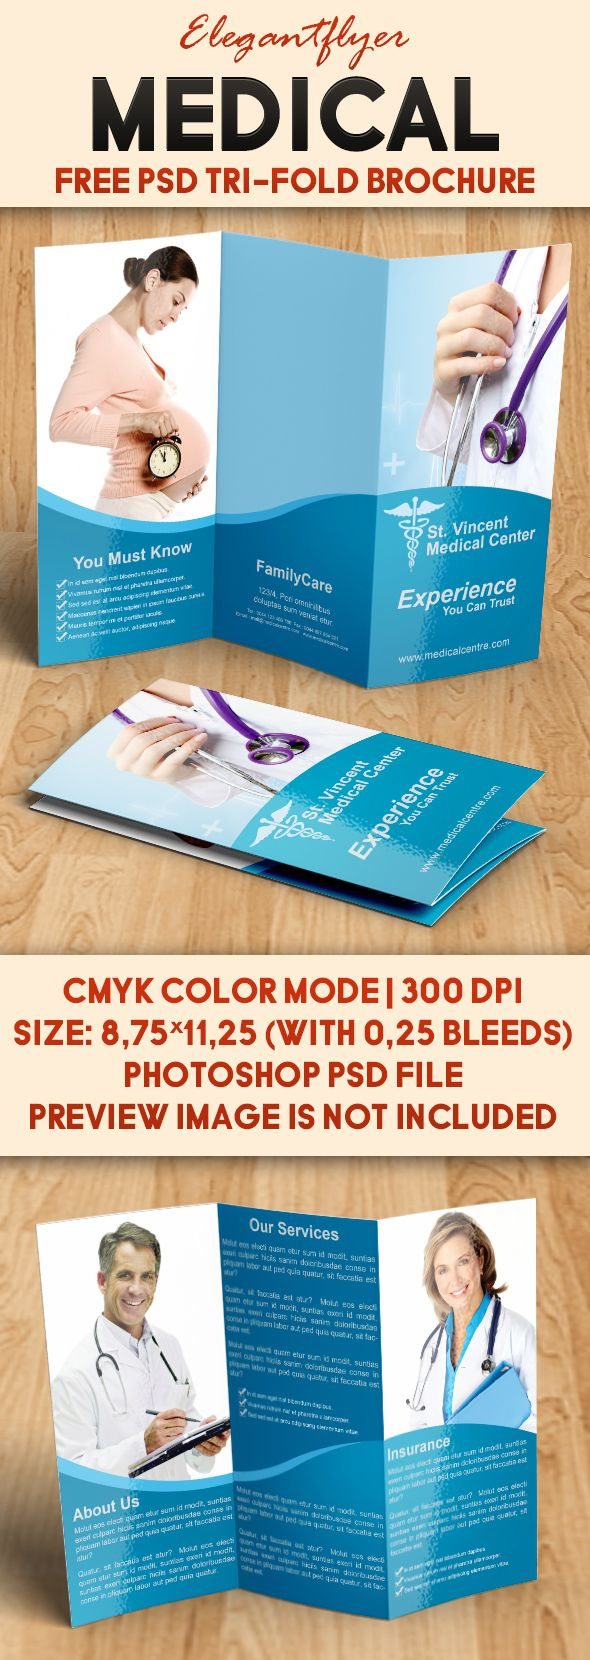 Best Free Brochure Ideas On Pinterest Free Booklet Template - Free medical brochure templates